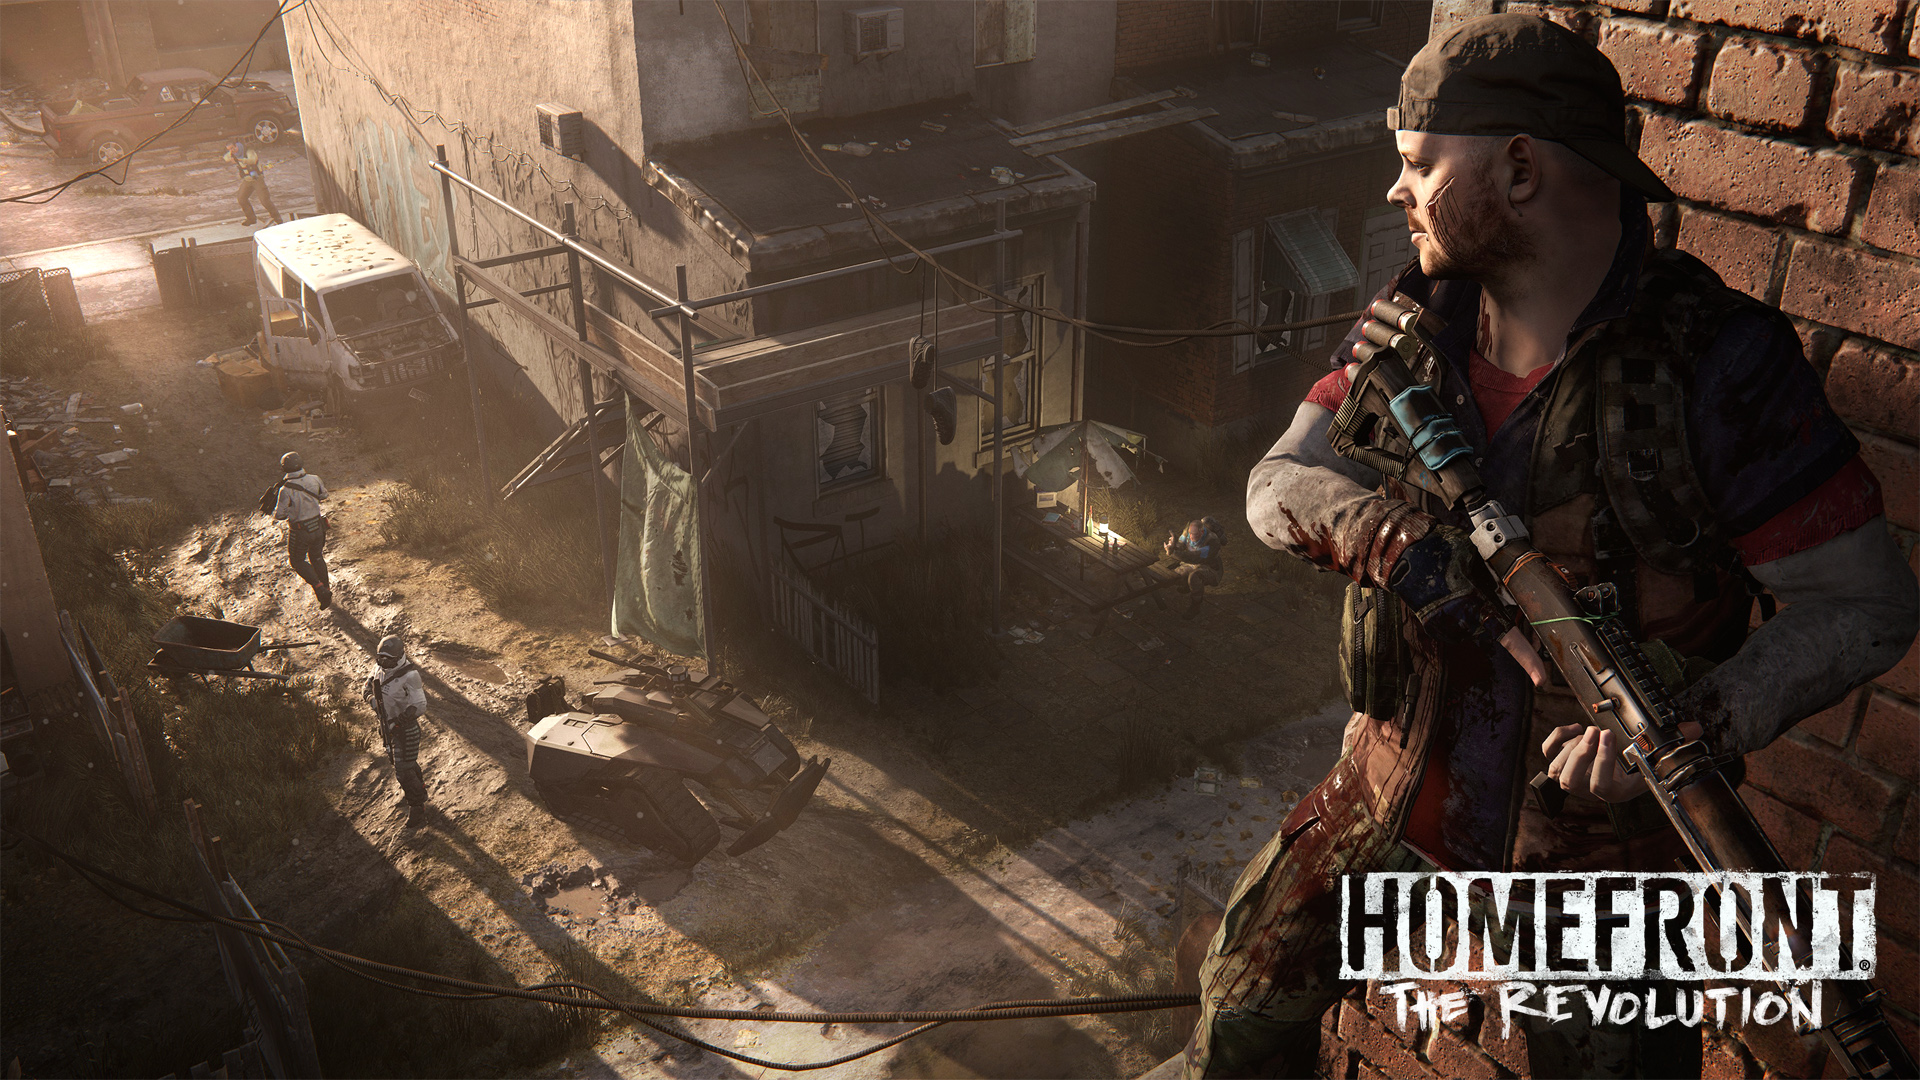 HD Wallpapers Homefront The Revolution